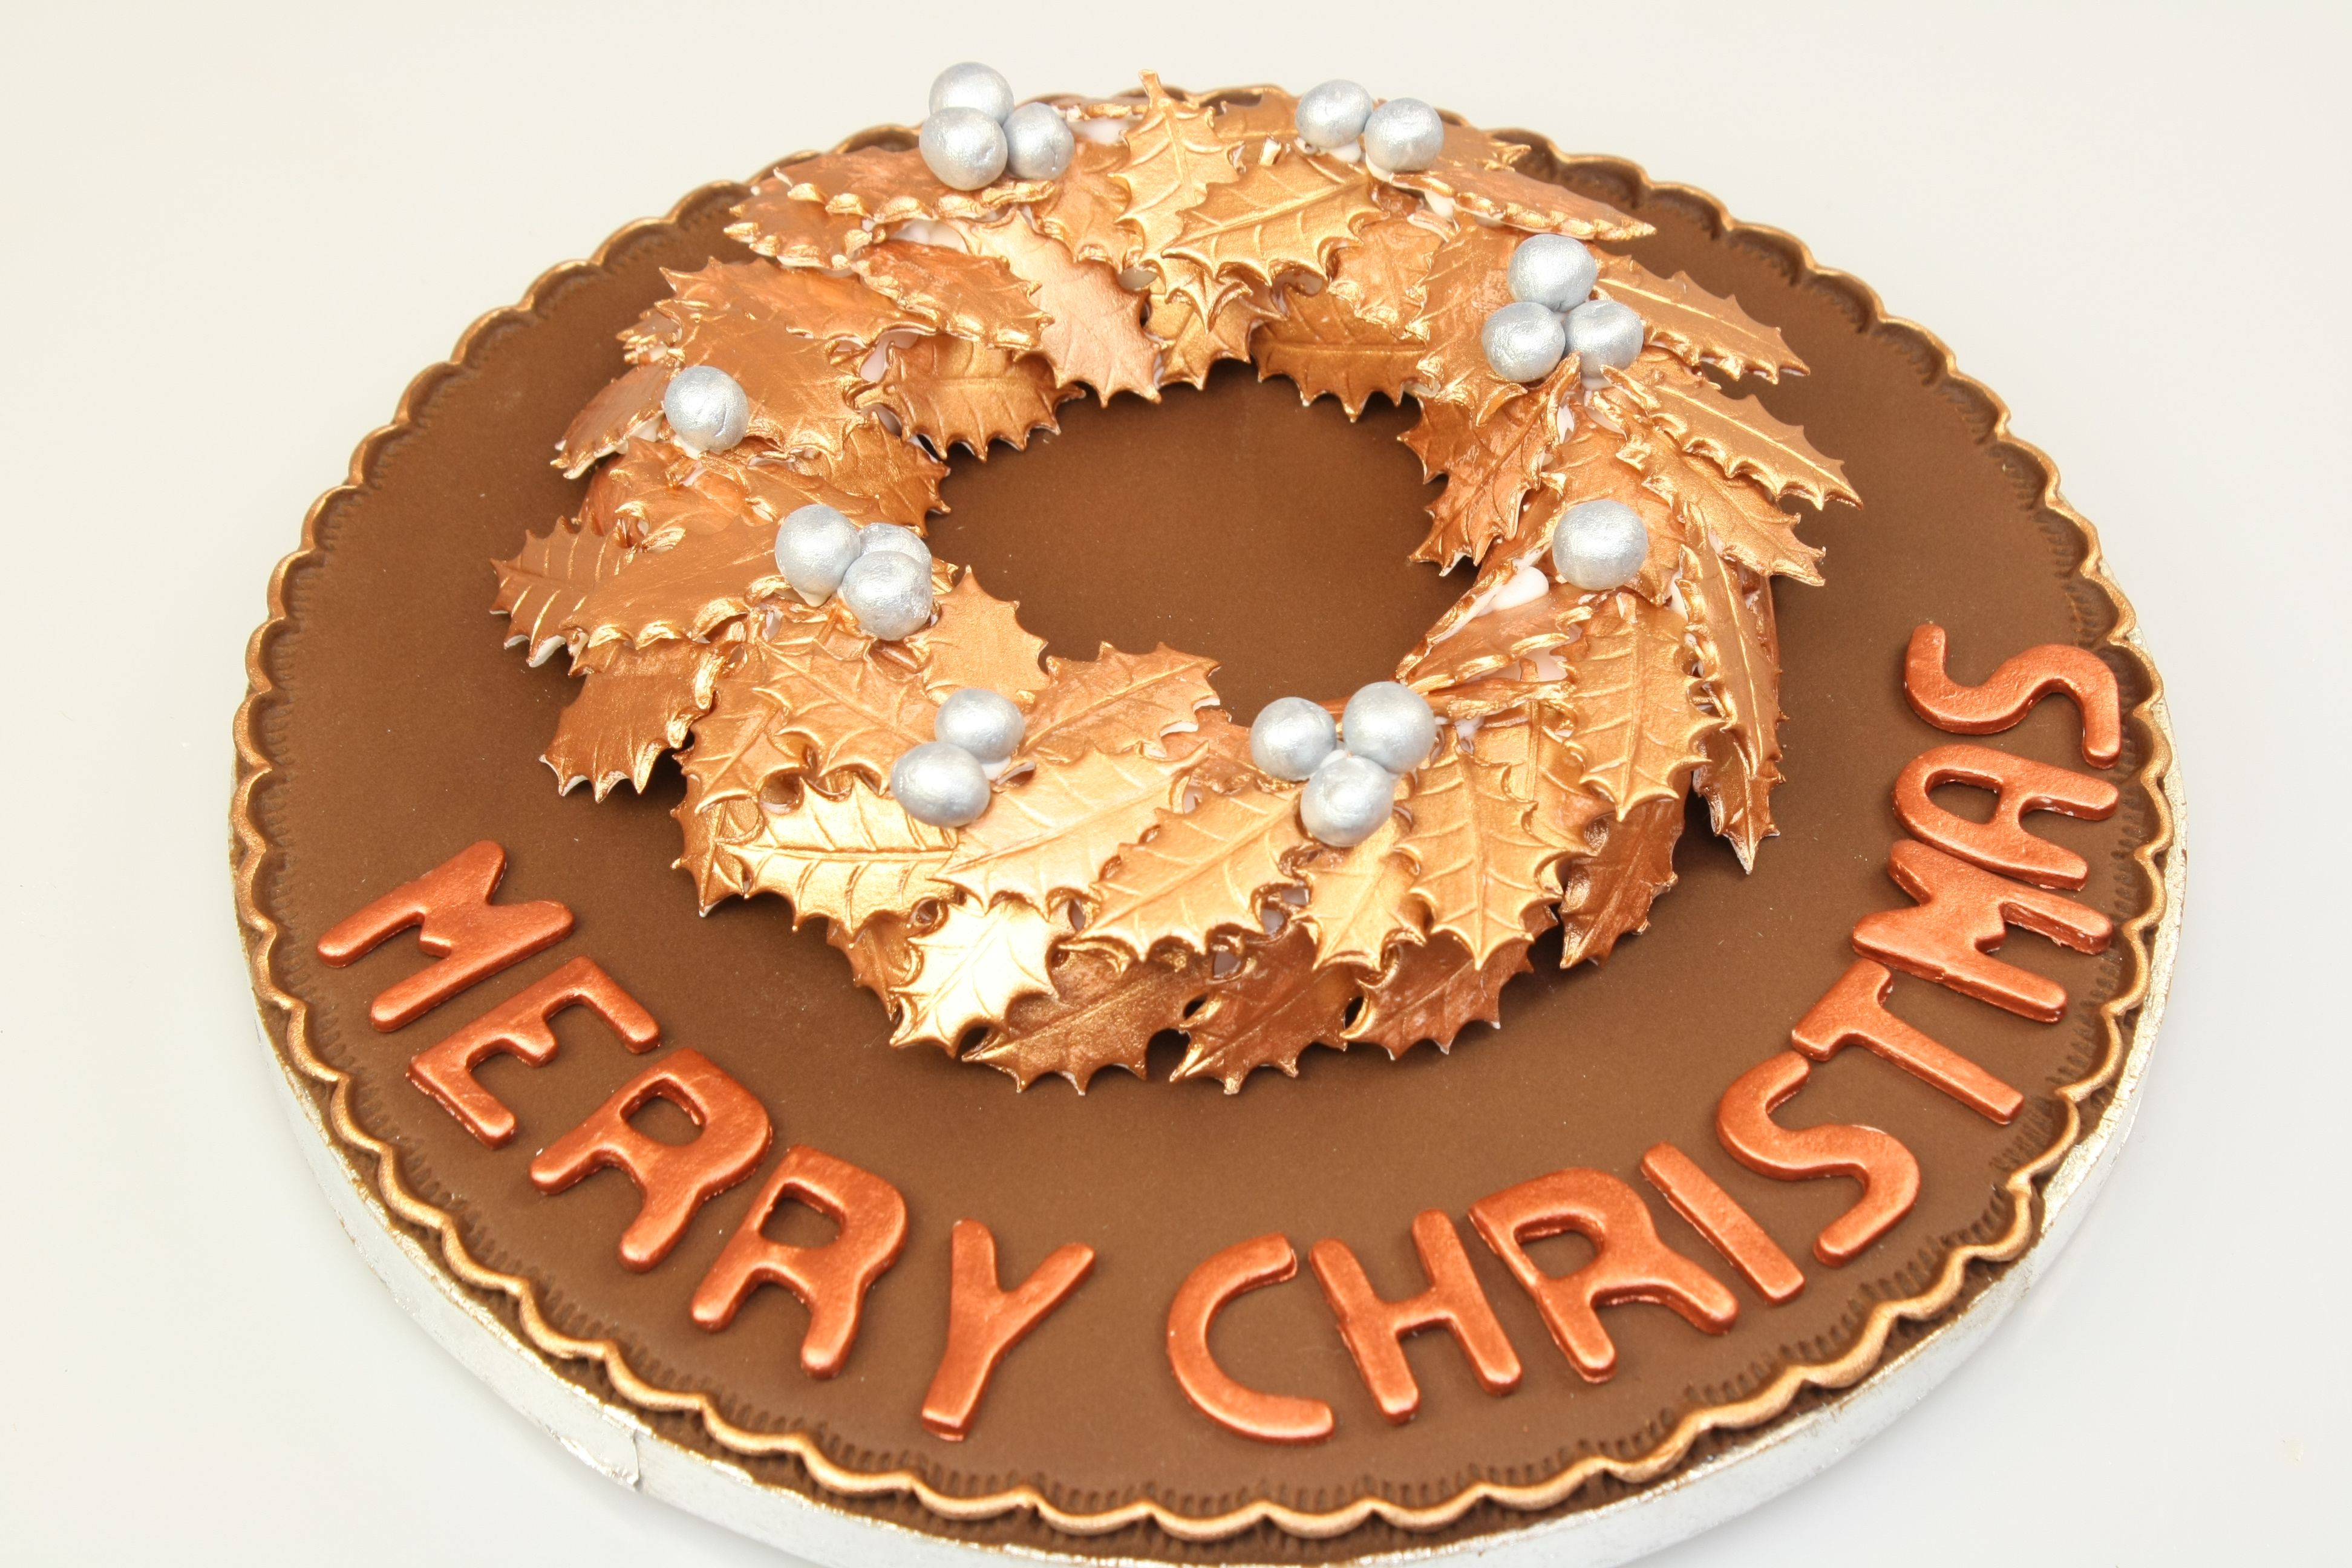 Add Colourshimmershine To Your Christmas Cakes Using